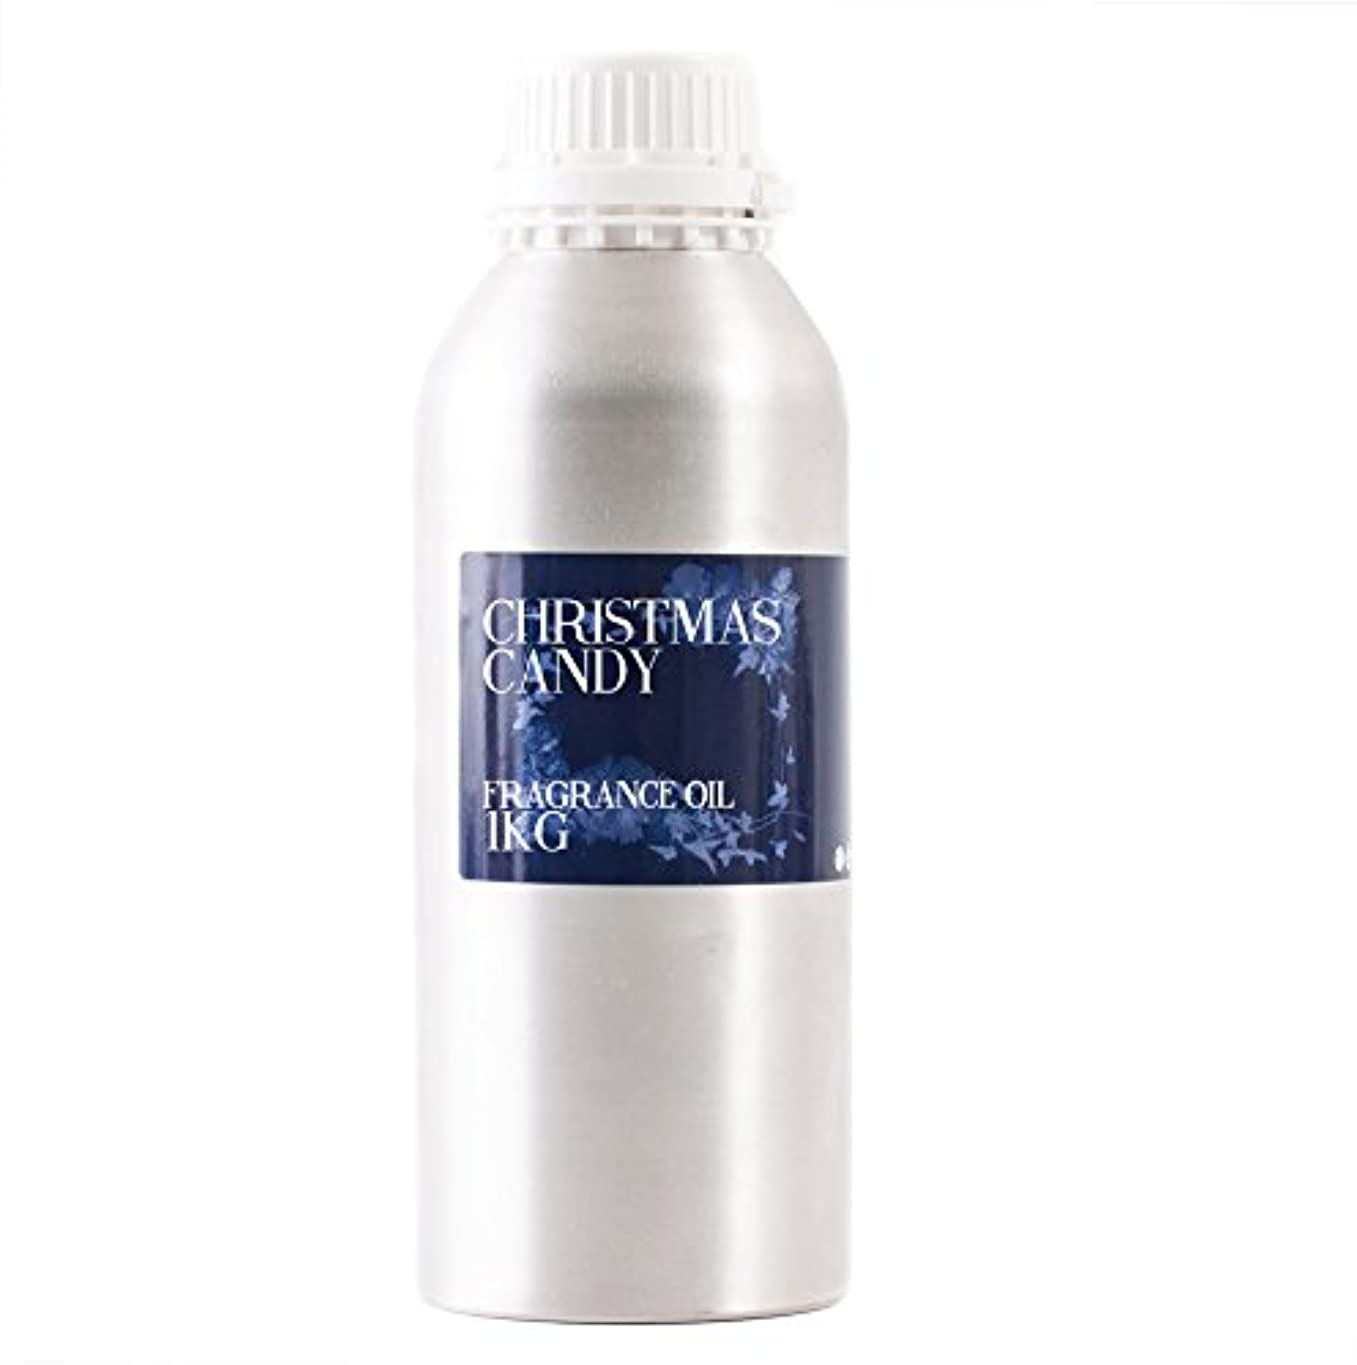 Mystic Moments | Christmas Candy Fragrance Oil - 1Kg